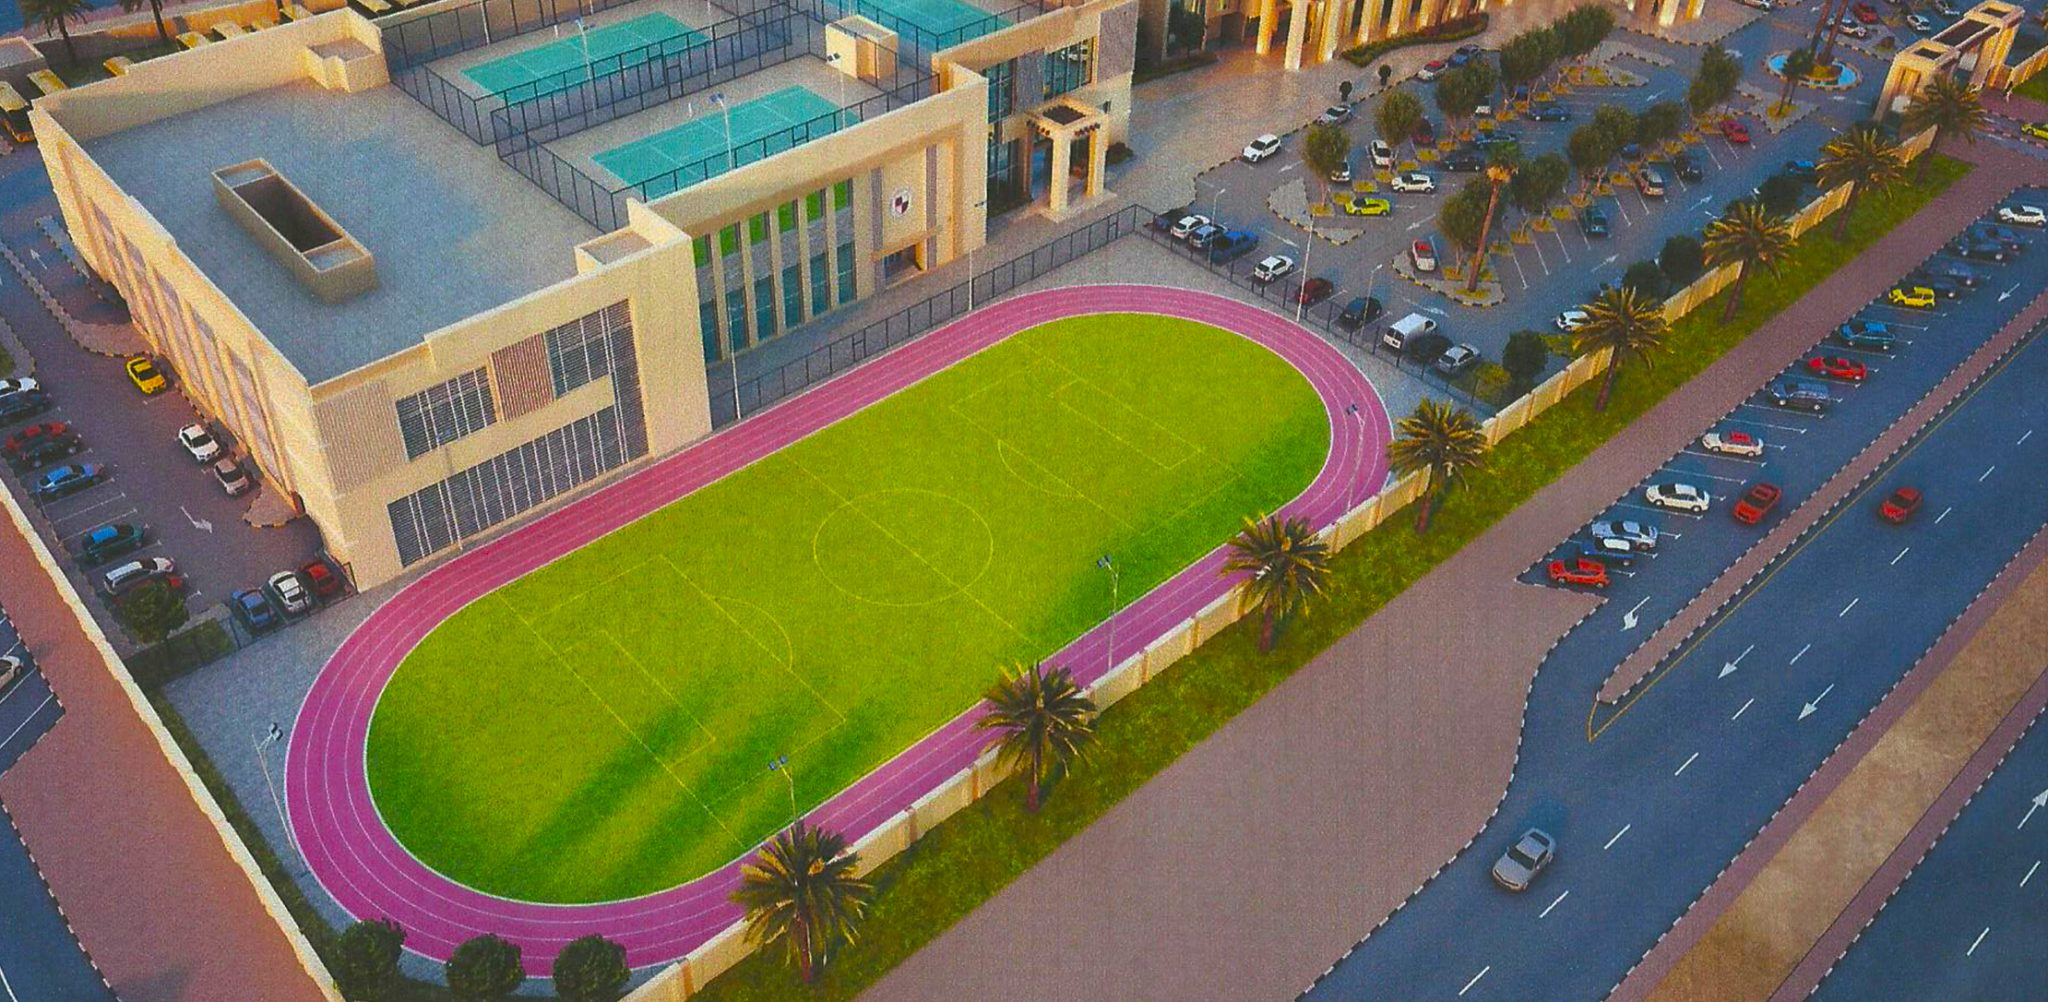 Roof top courts, running track and playing fields at the new Solomon International School planned for opening in Dubai in September 2018